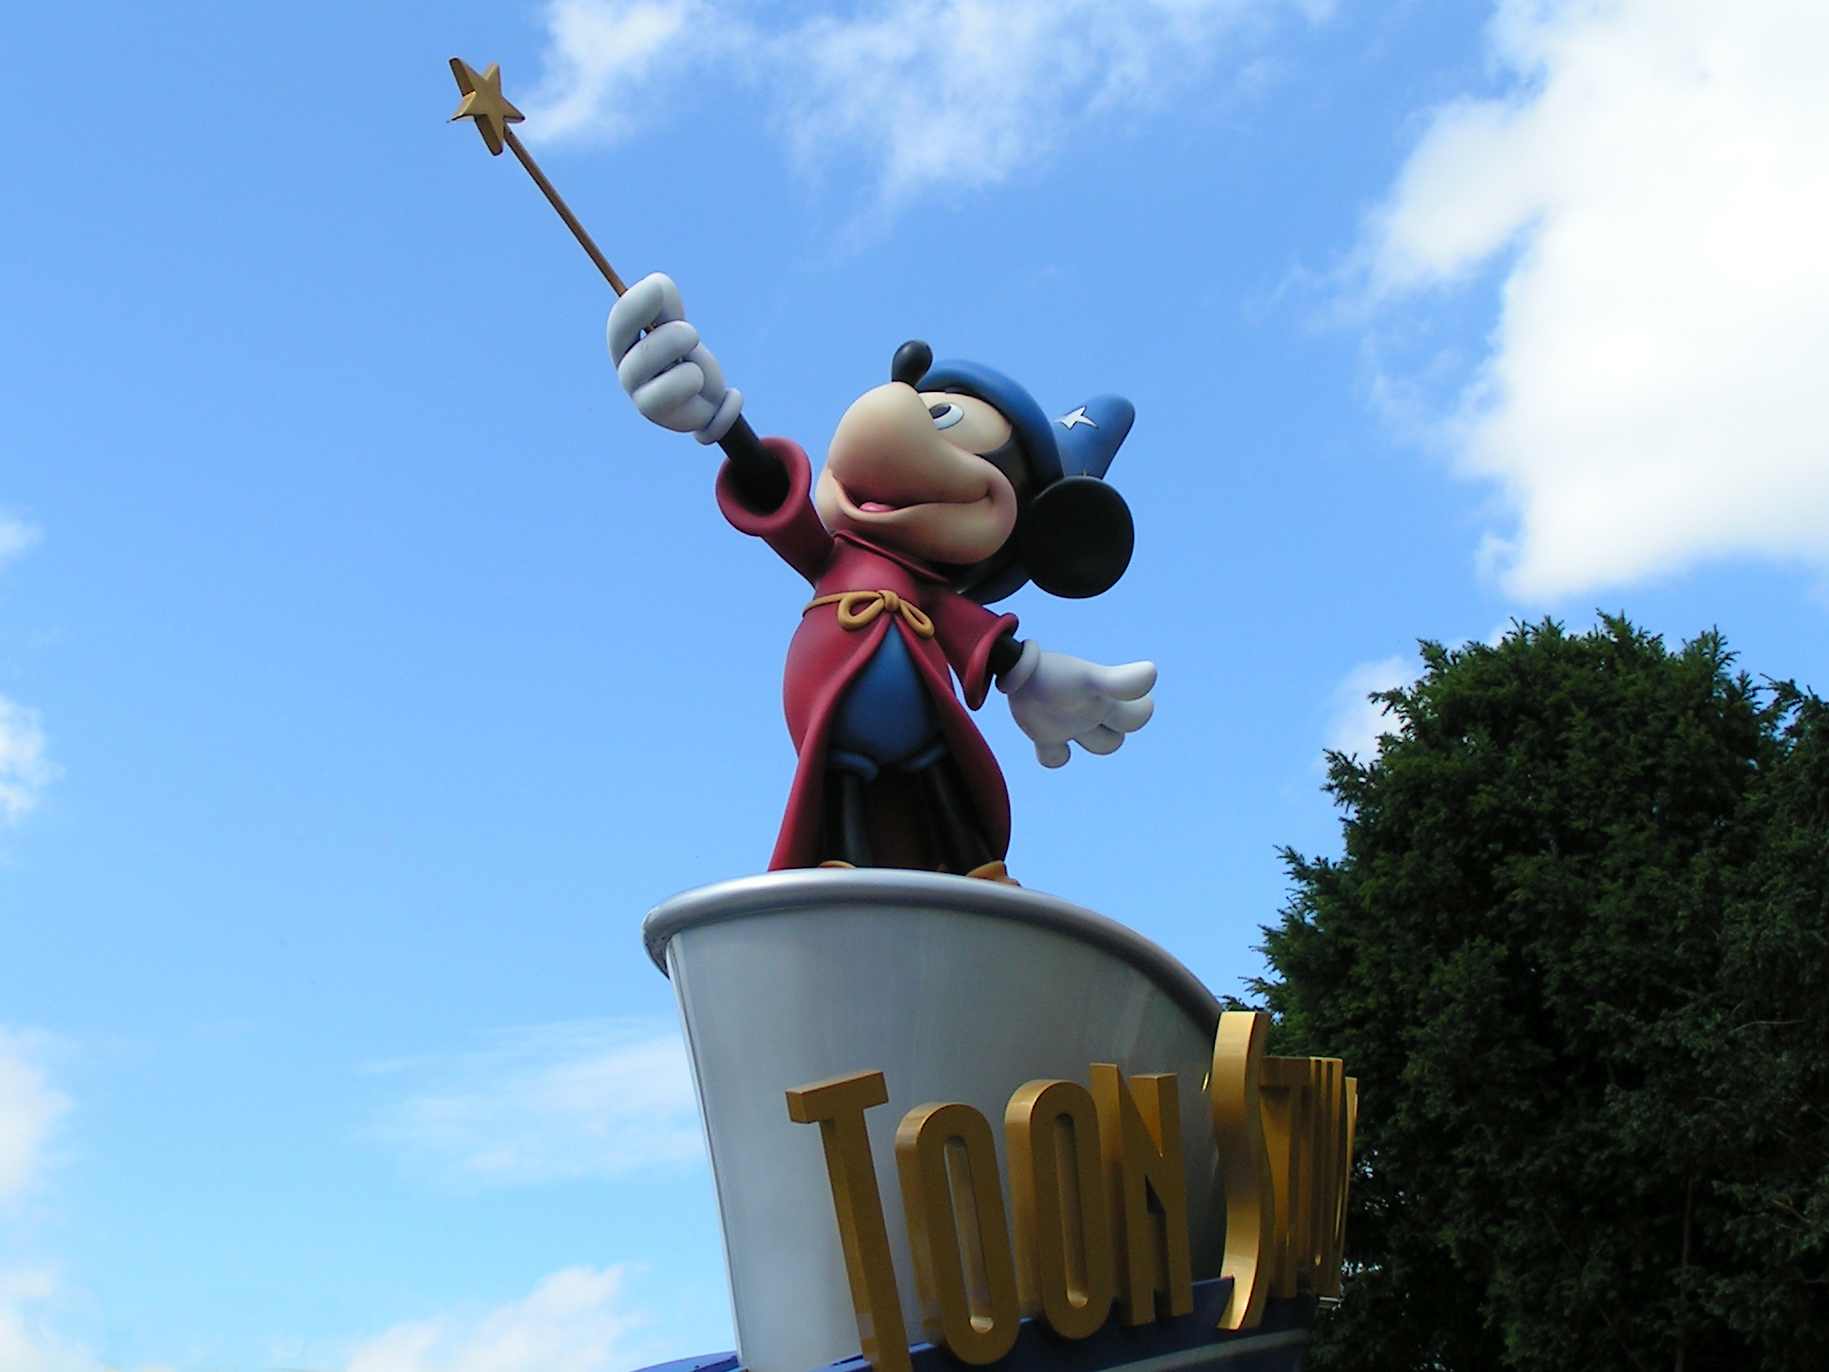 Mickey Mouse Statue Disneyland Paris.jpg